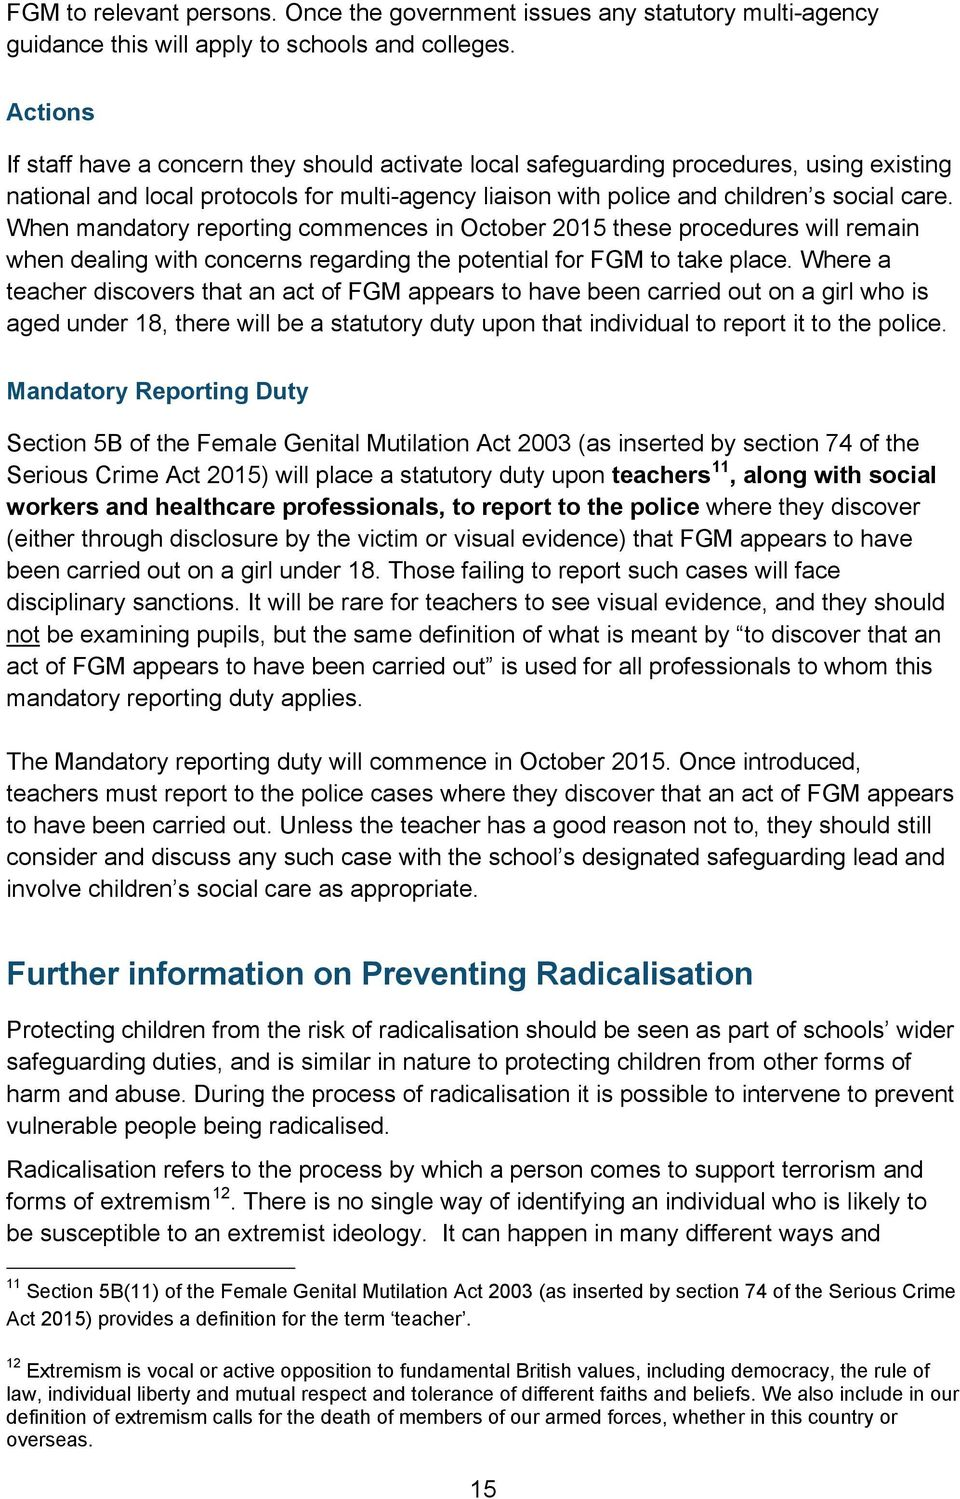 When mandatory reporting commences in October 2015 these procedures will remain when dealing with concerns regarding the potential for FGM to take place.